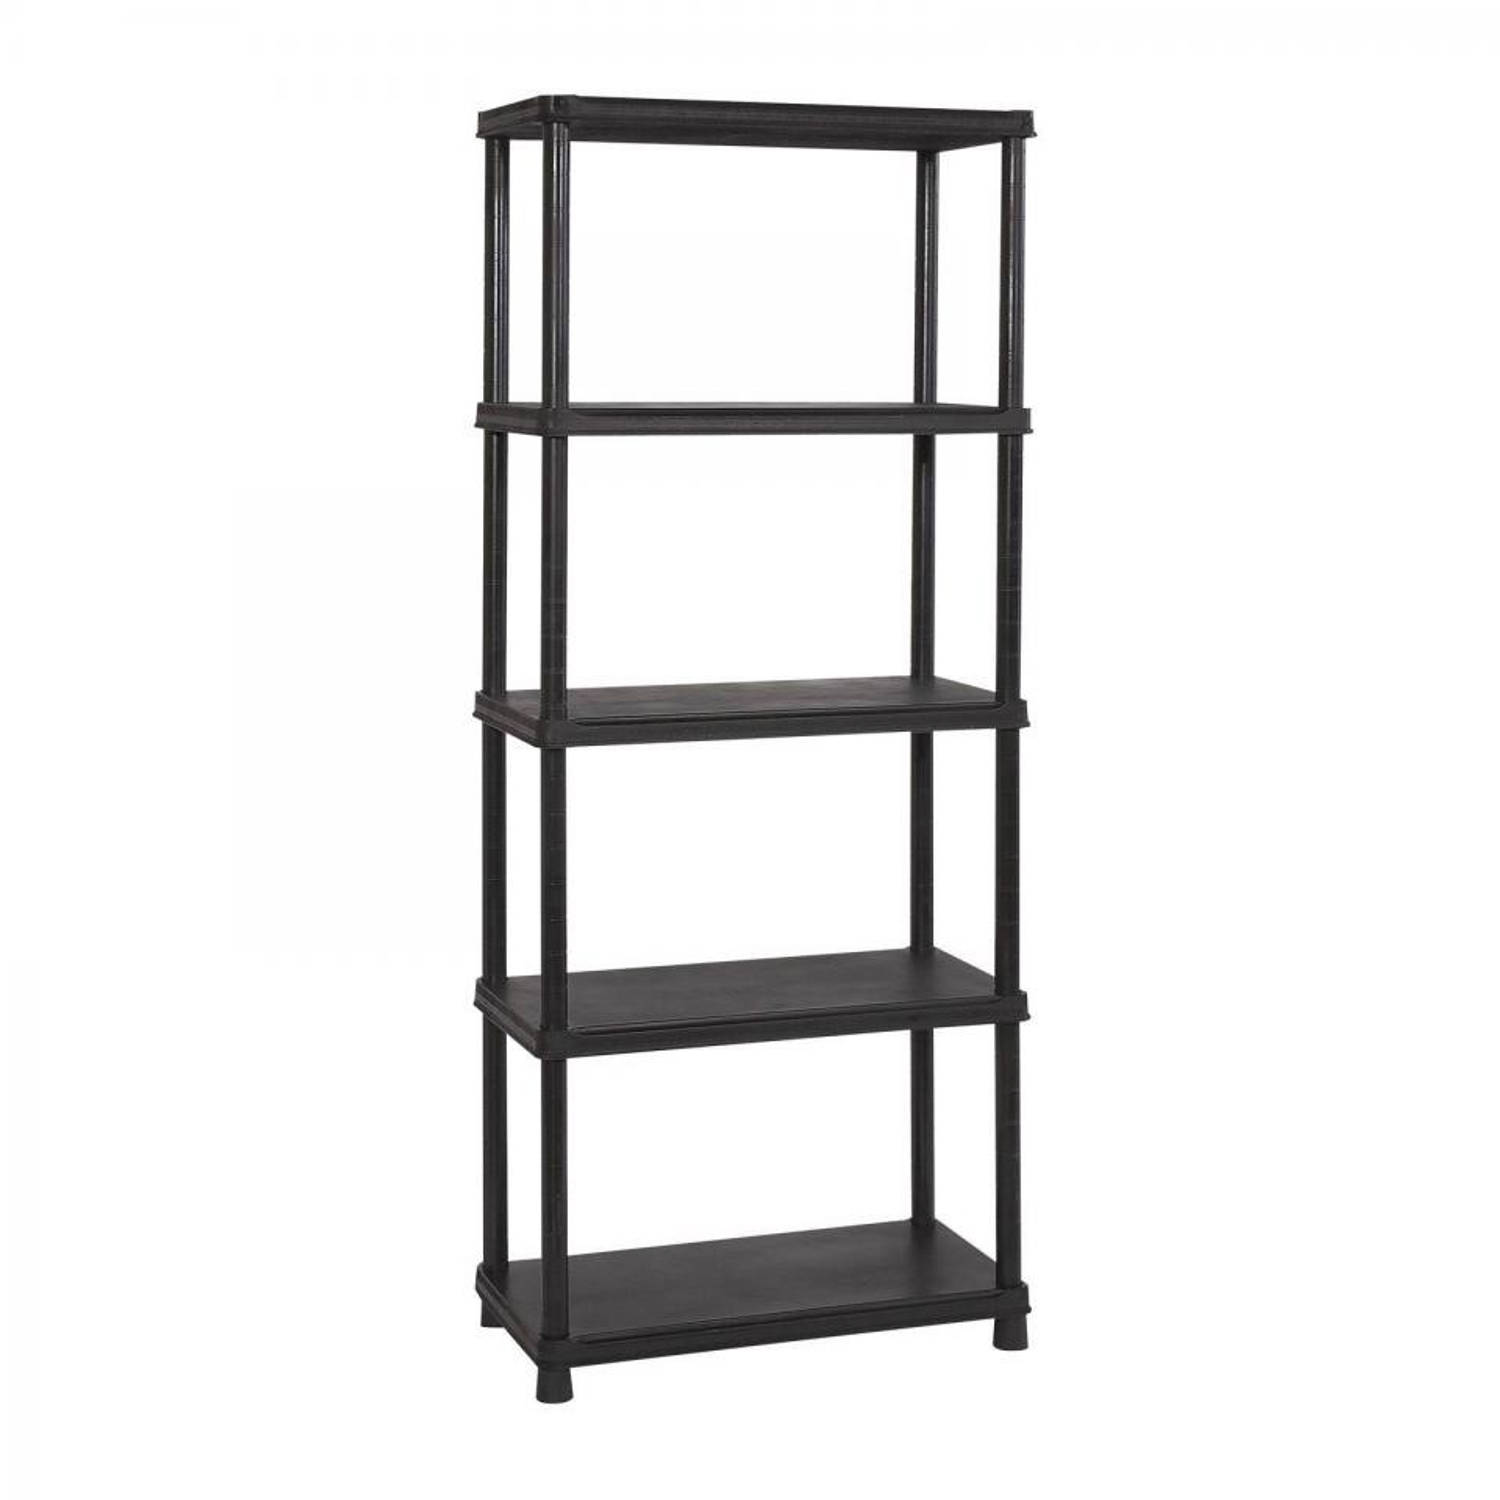 KIS Plus Shelf 80-5